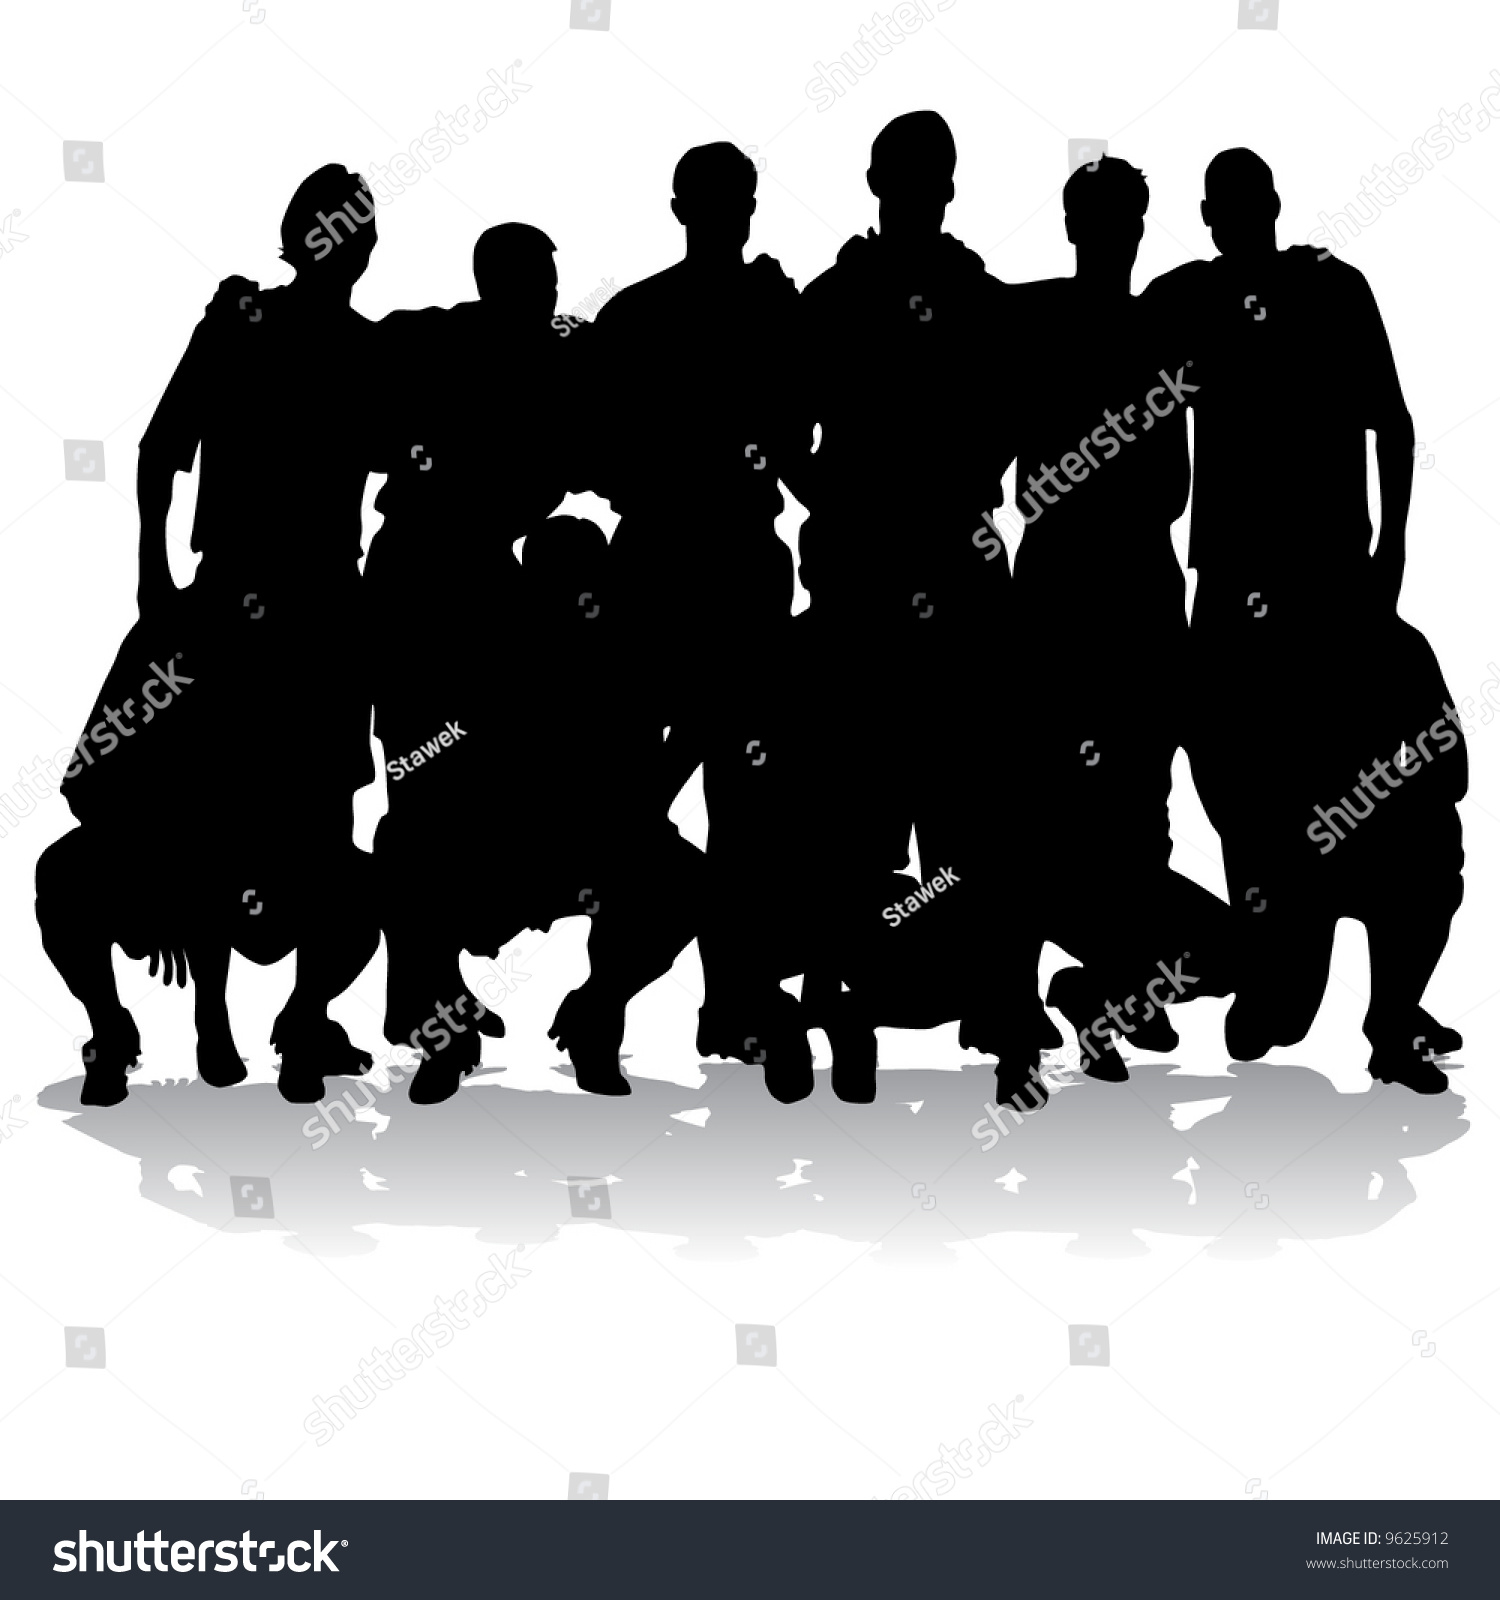 soccer team silhouettes